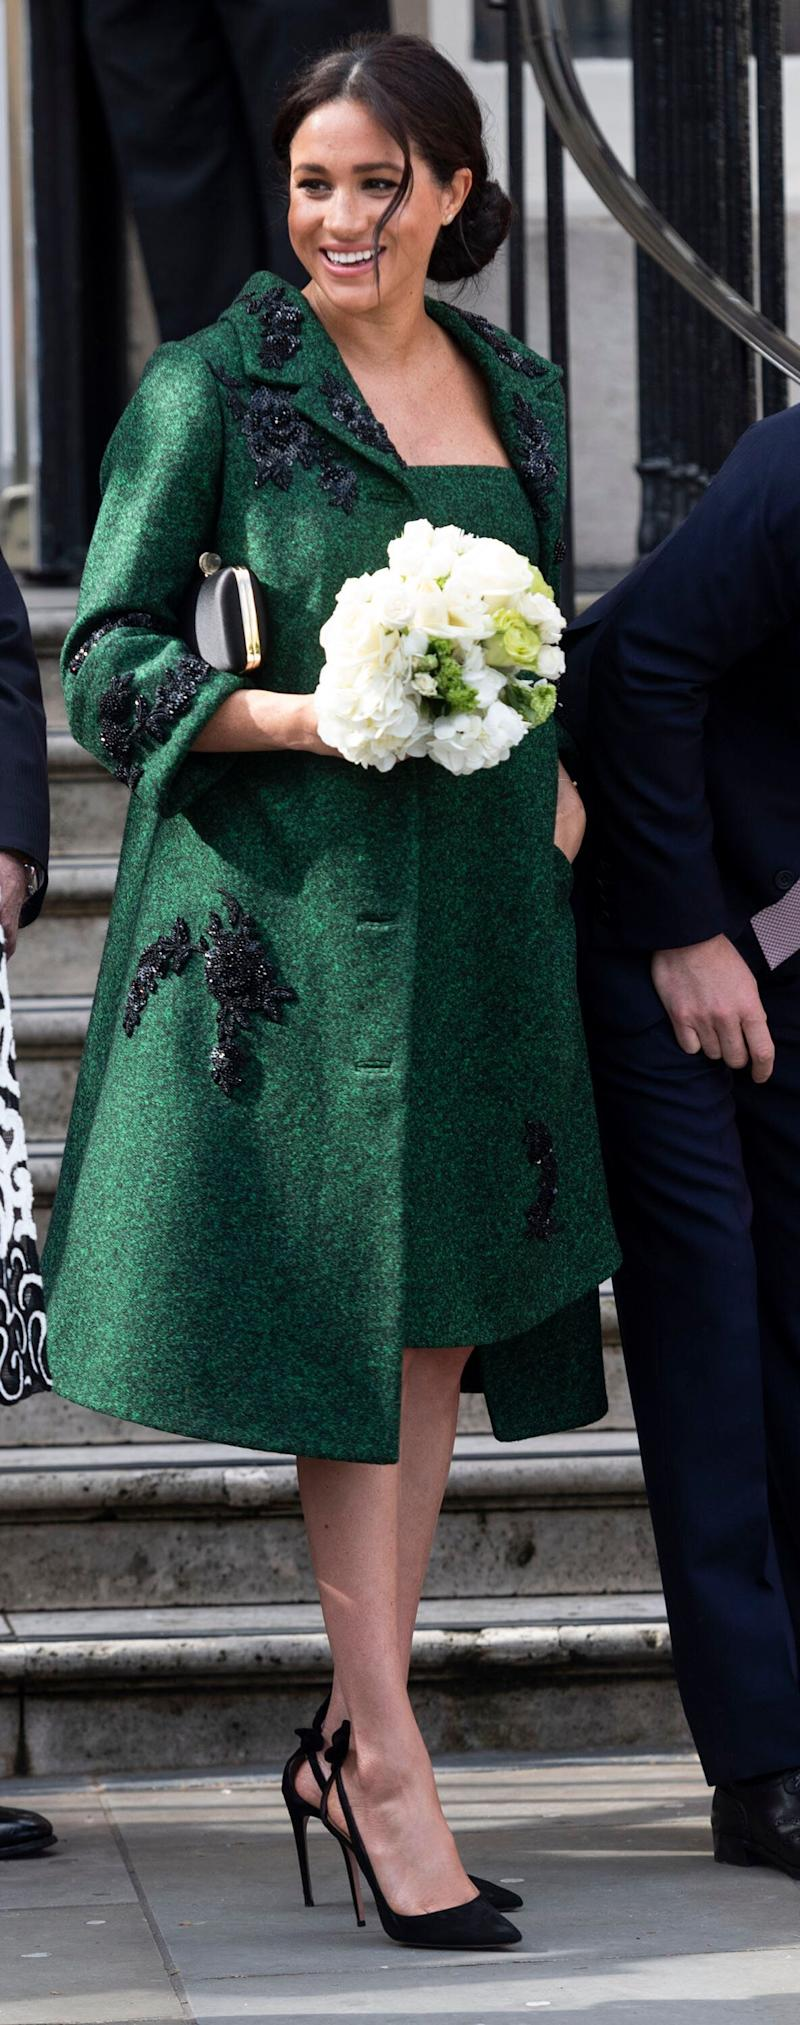 Nothing to see here, just a regular, super casual emerald coat and matching dress from — where else? — one of her favourite labels, Erdem, founded by a Canadian.